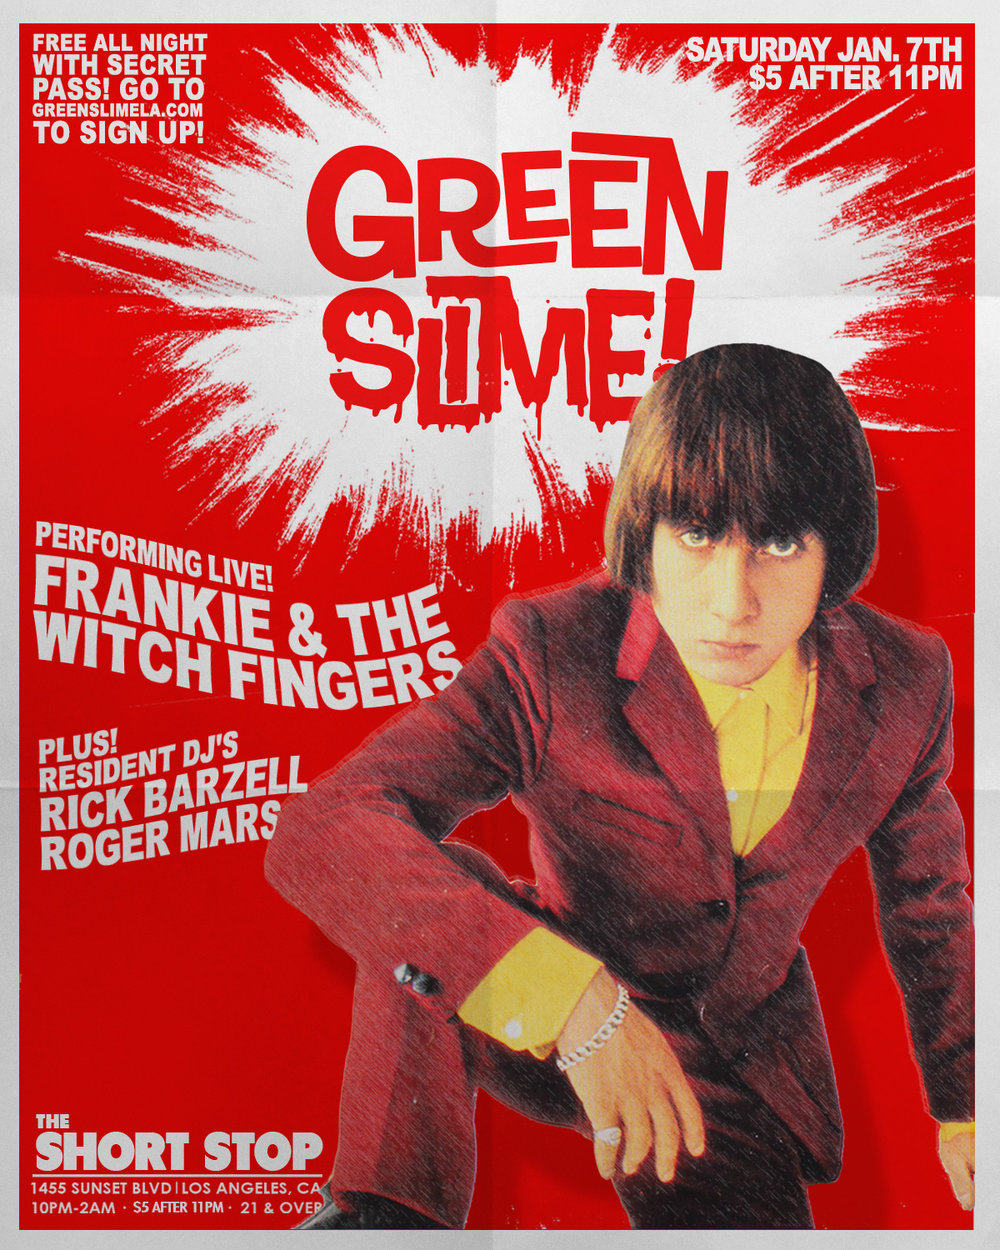 GREEN SLIME JAN FLYER.jpg